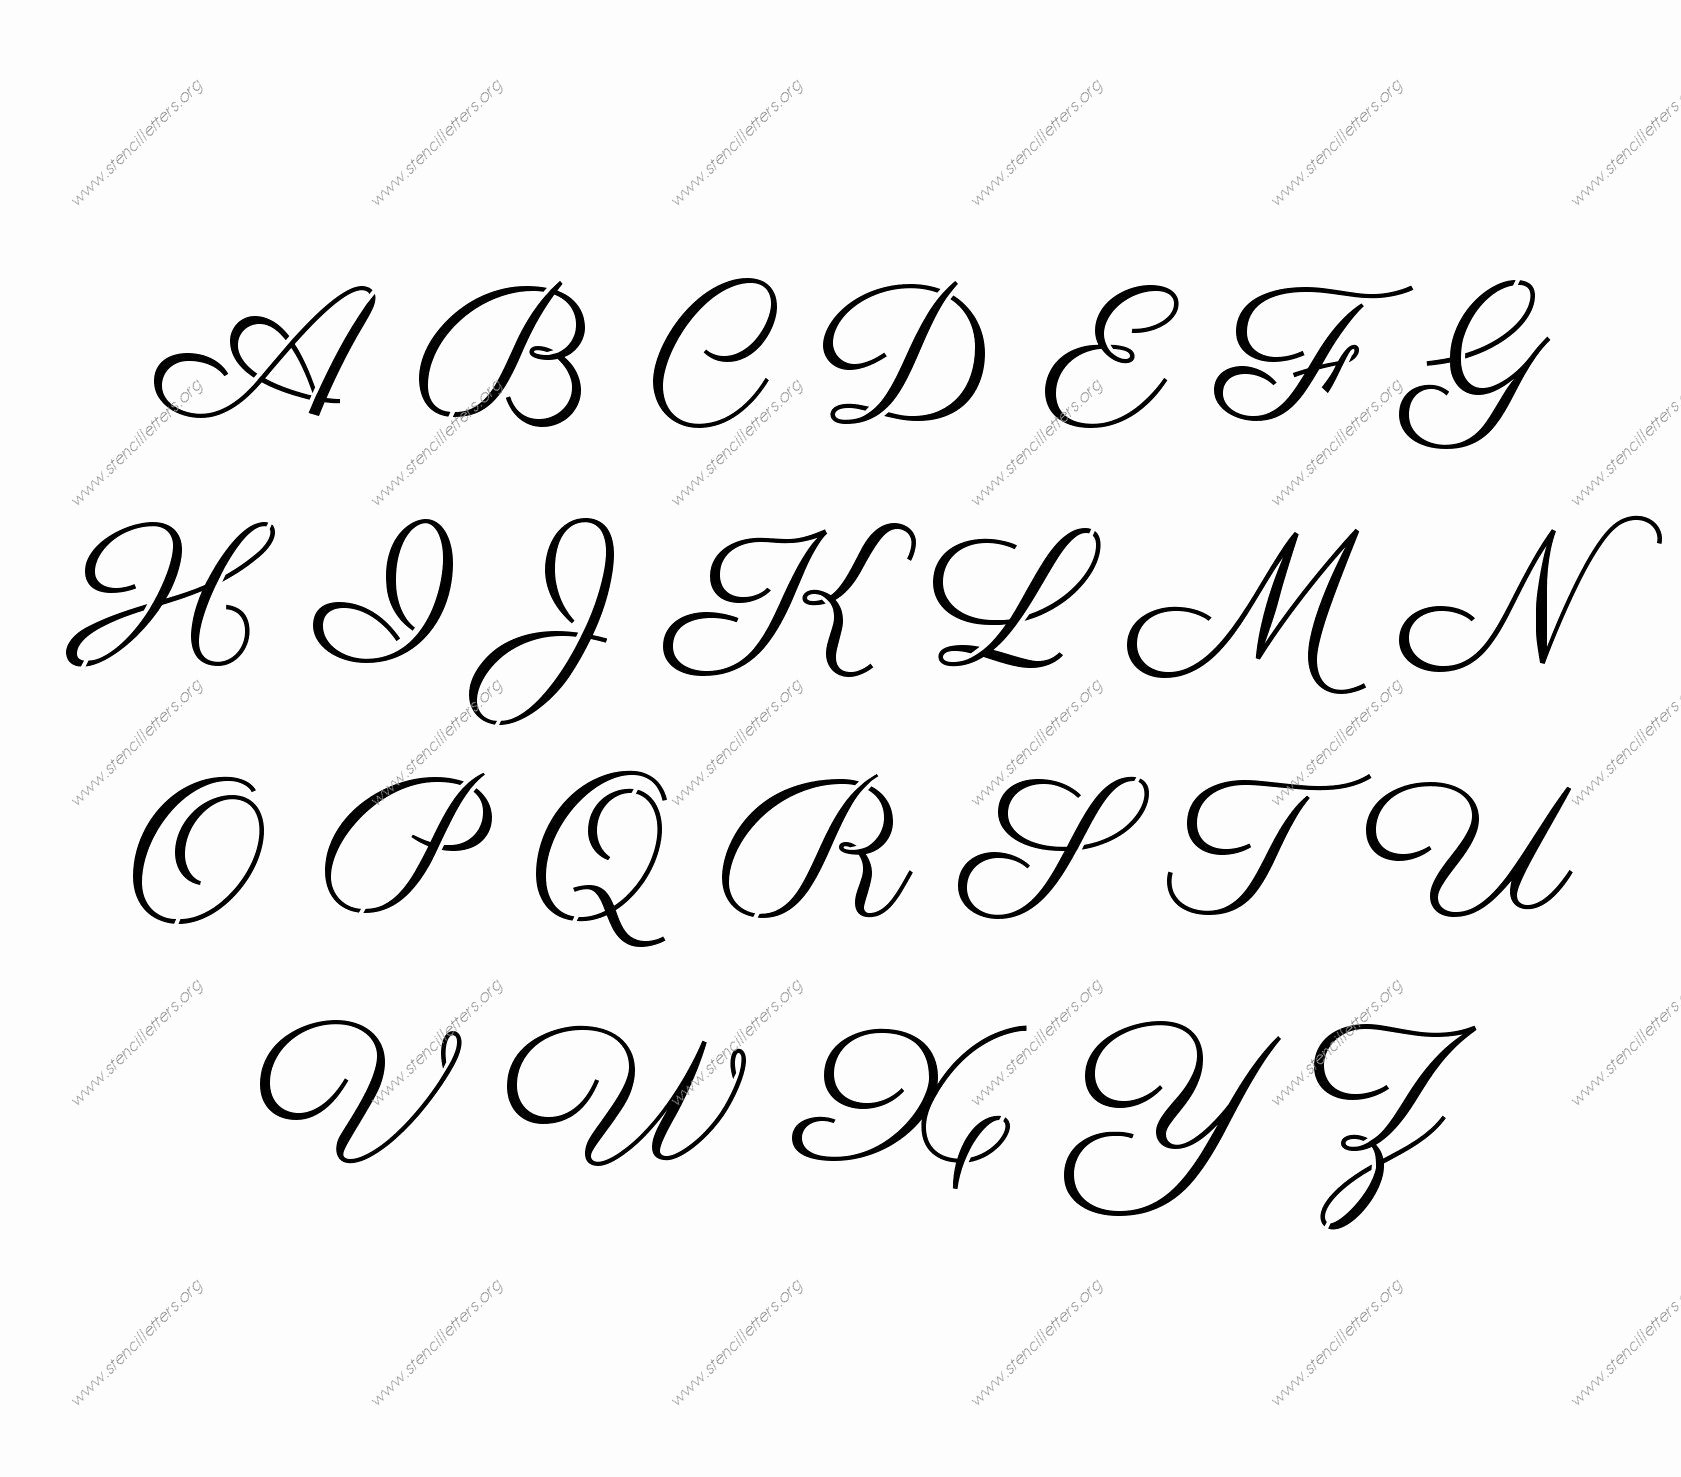 Free Printable Alphabet Stencils Templates Awesome Free Printable Alphabet Stencil Letters Template